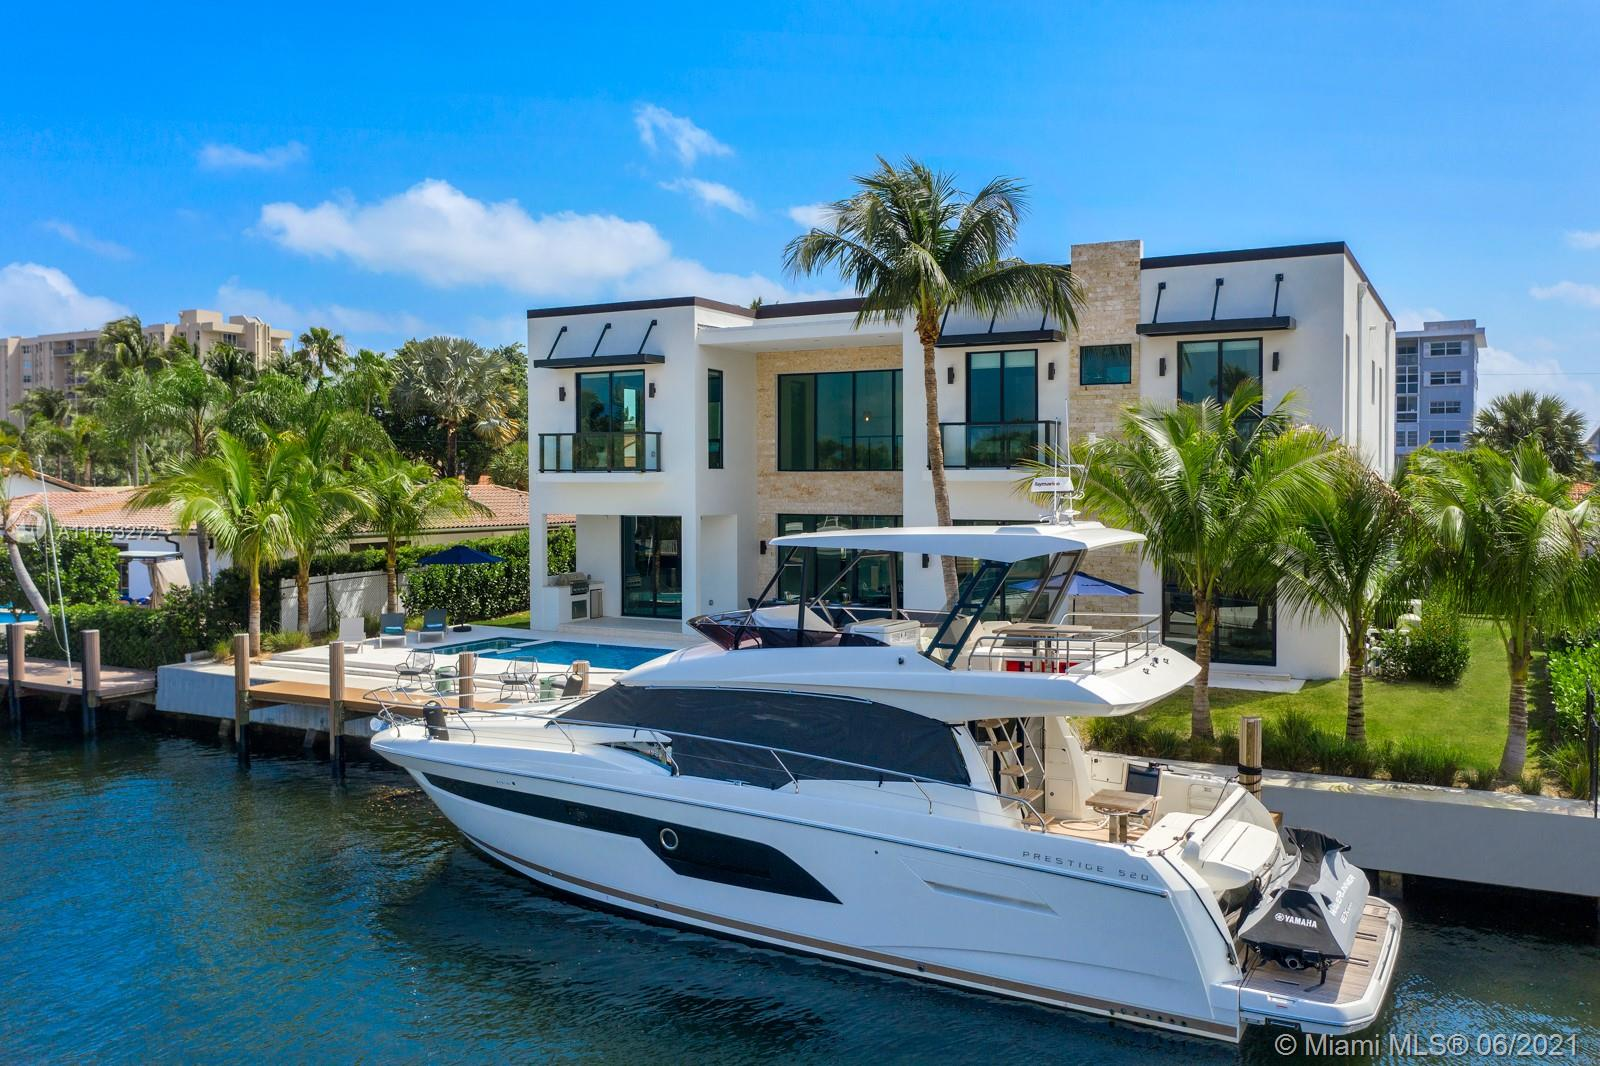 This modern new waterfront home was built in 2021 and decorated by famous BBH design. Residence features 6 bedrooms and 6.5 baths, every bedroom has a bathroom inside, one master bedroom downstairs, and a luxurious master suite overlooking the waterway. Top of the line appliances, quartz waterfall countertop, and Wolf gas Professional range. Direct ocean access, 100' on water able to accommodate up to an 80' yacht. 2 car garage, hurricane impact windows and doors and multiple entertaining areas.